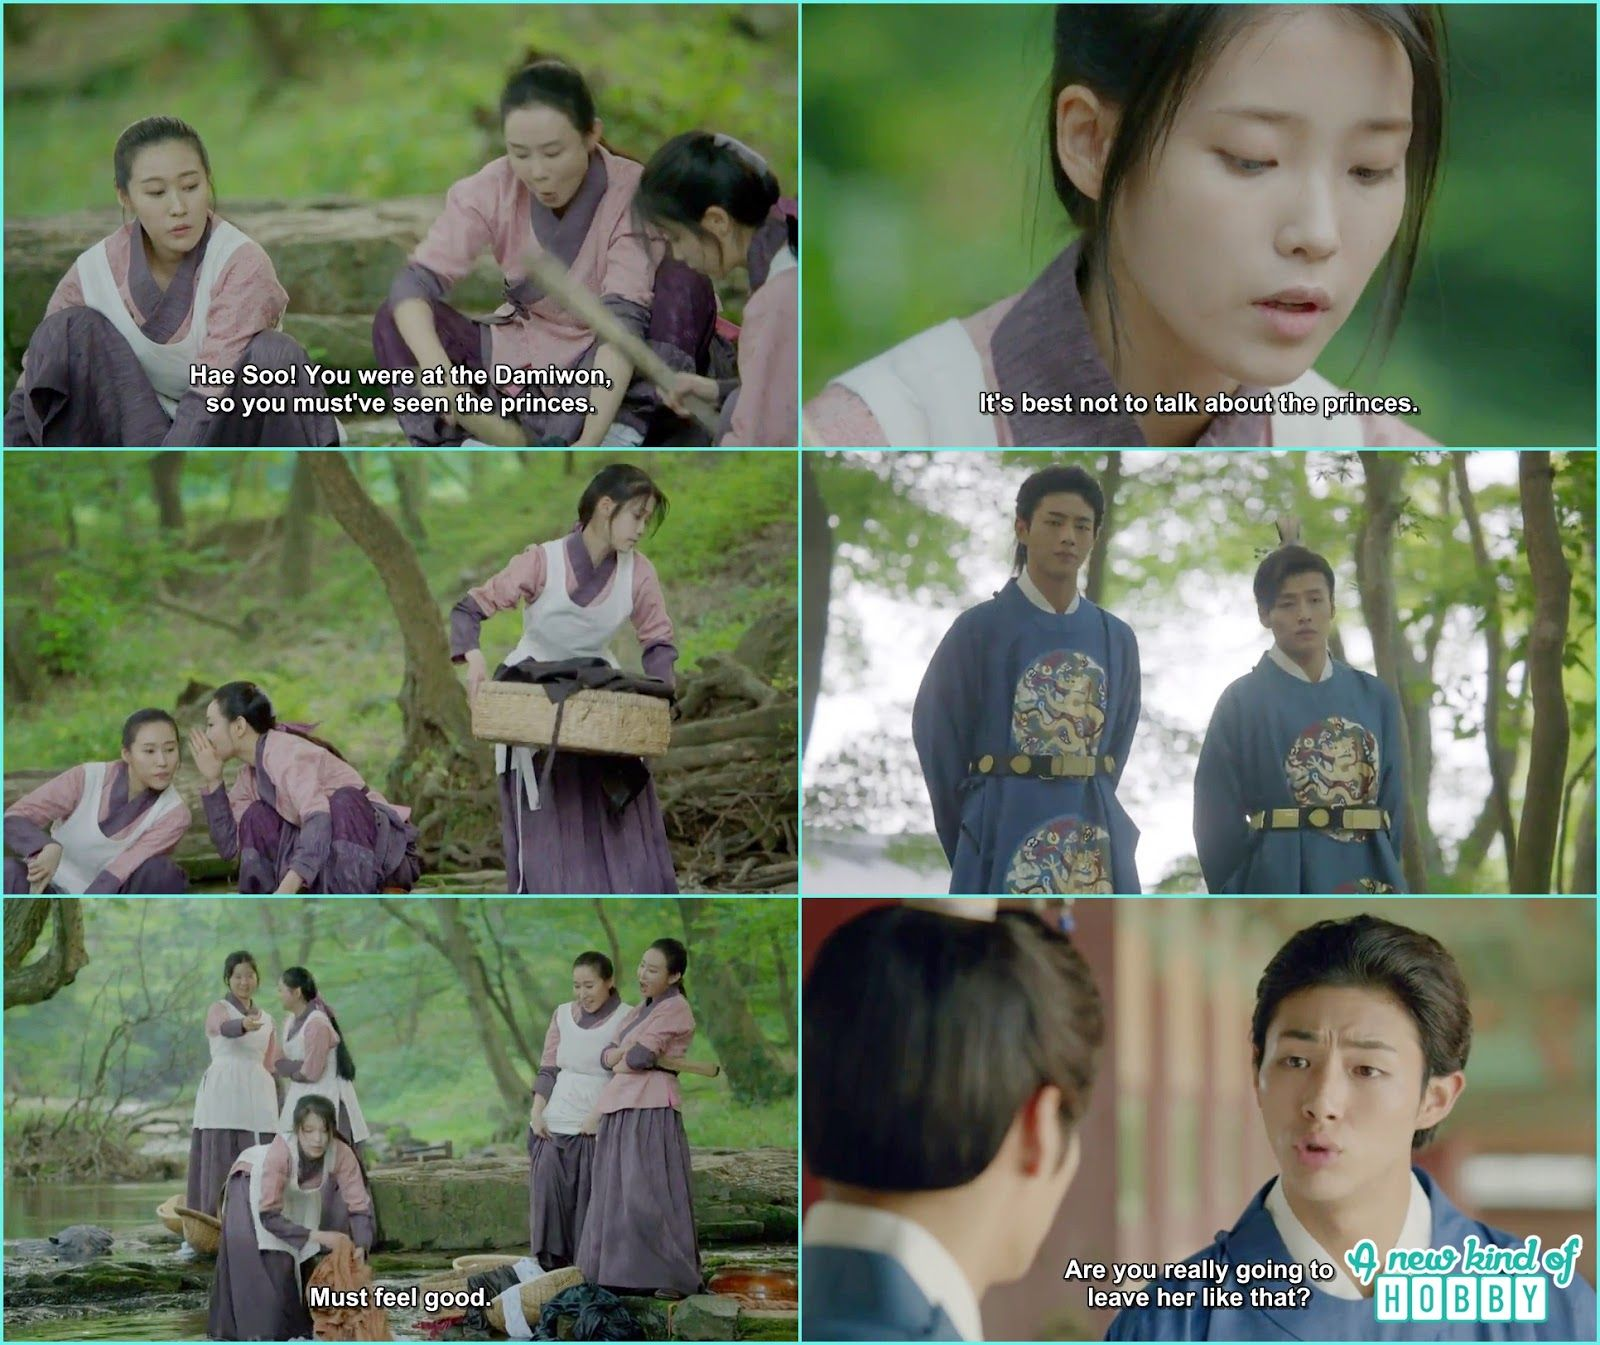 14th prince take 8th prince where hae soo working as the water maid